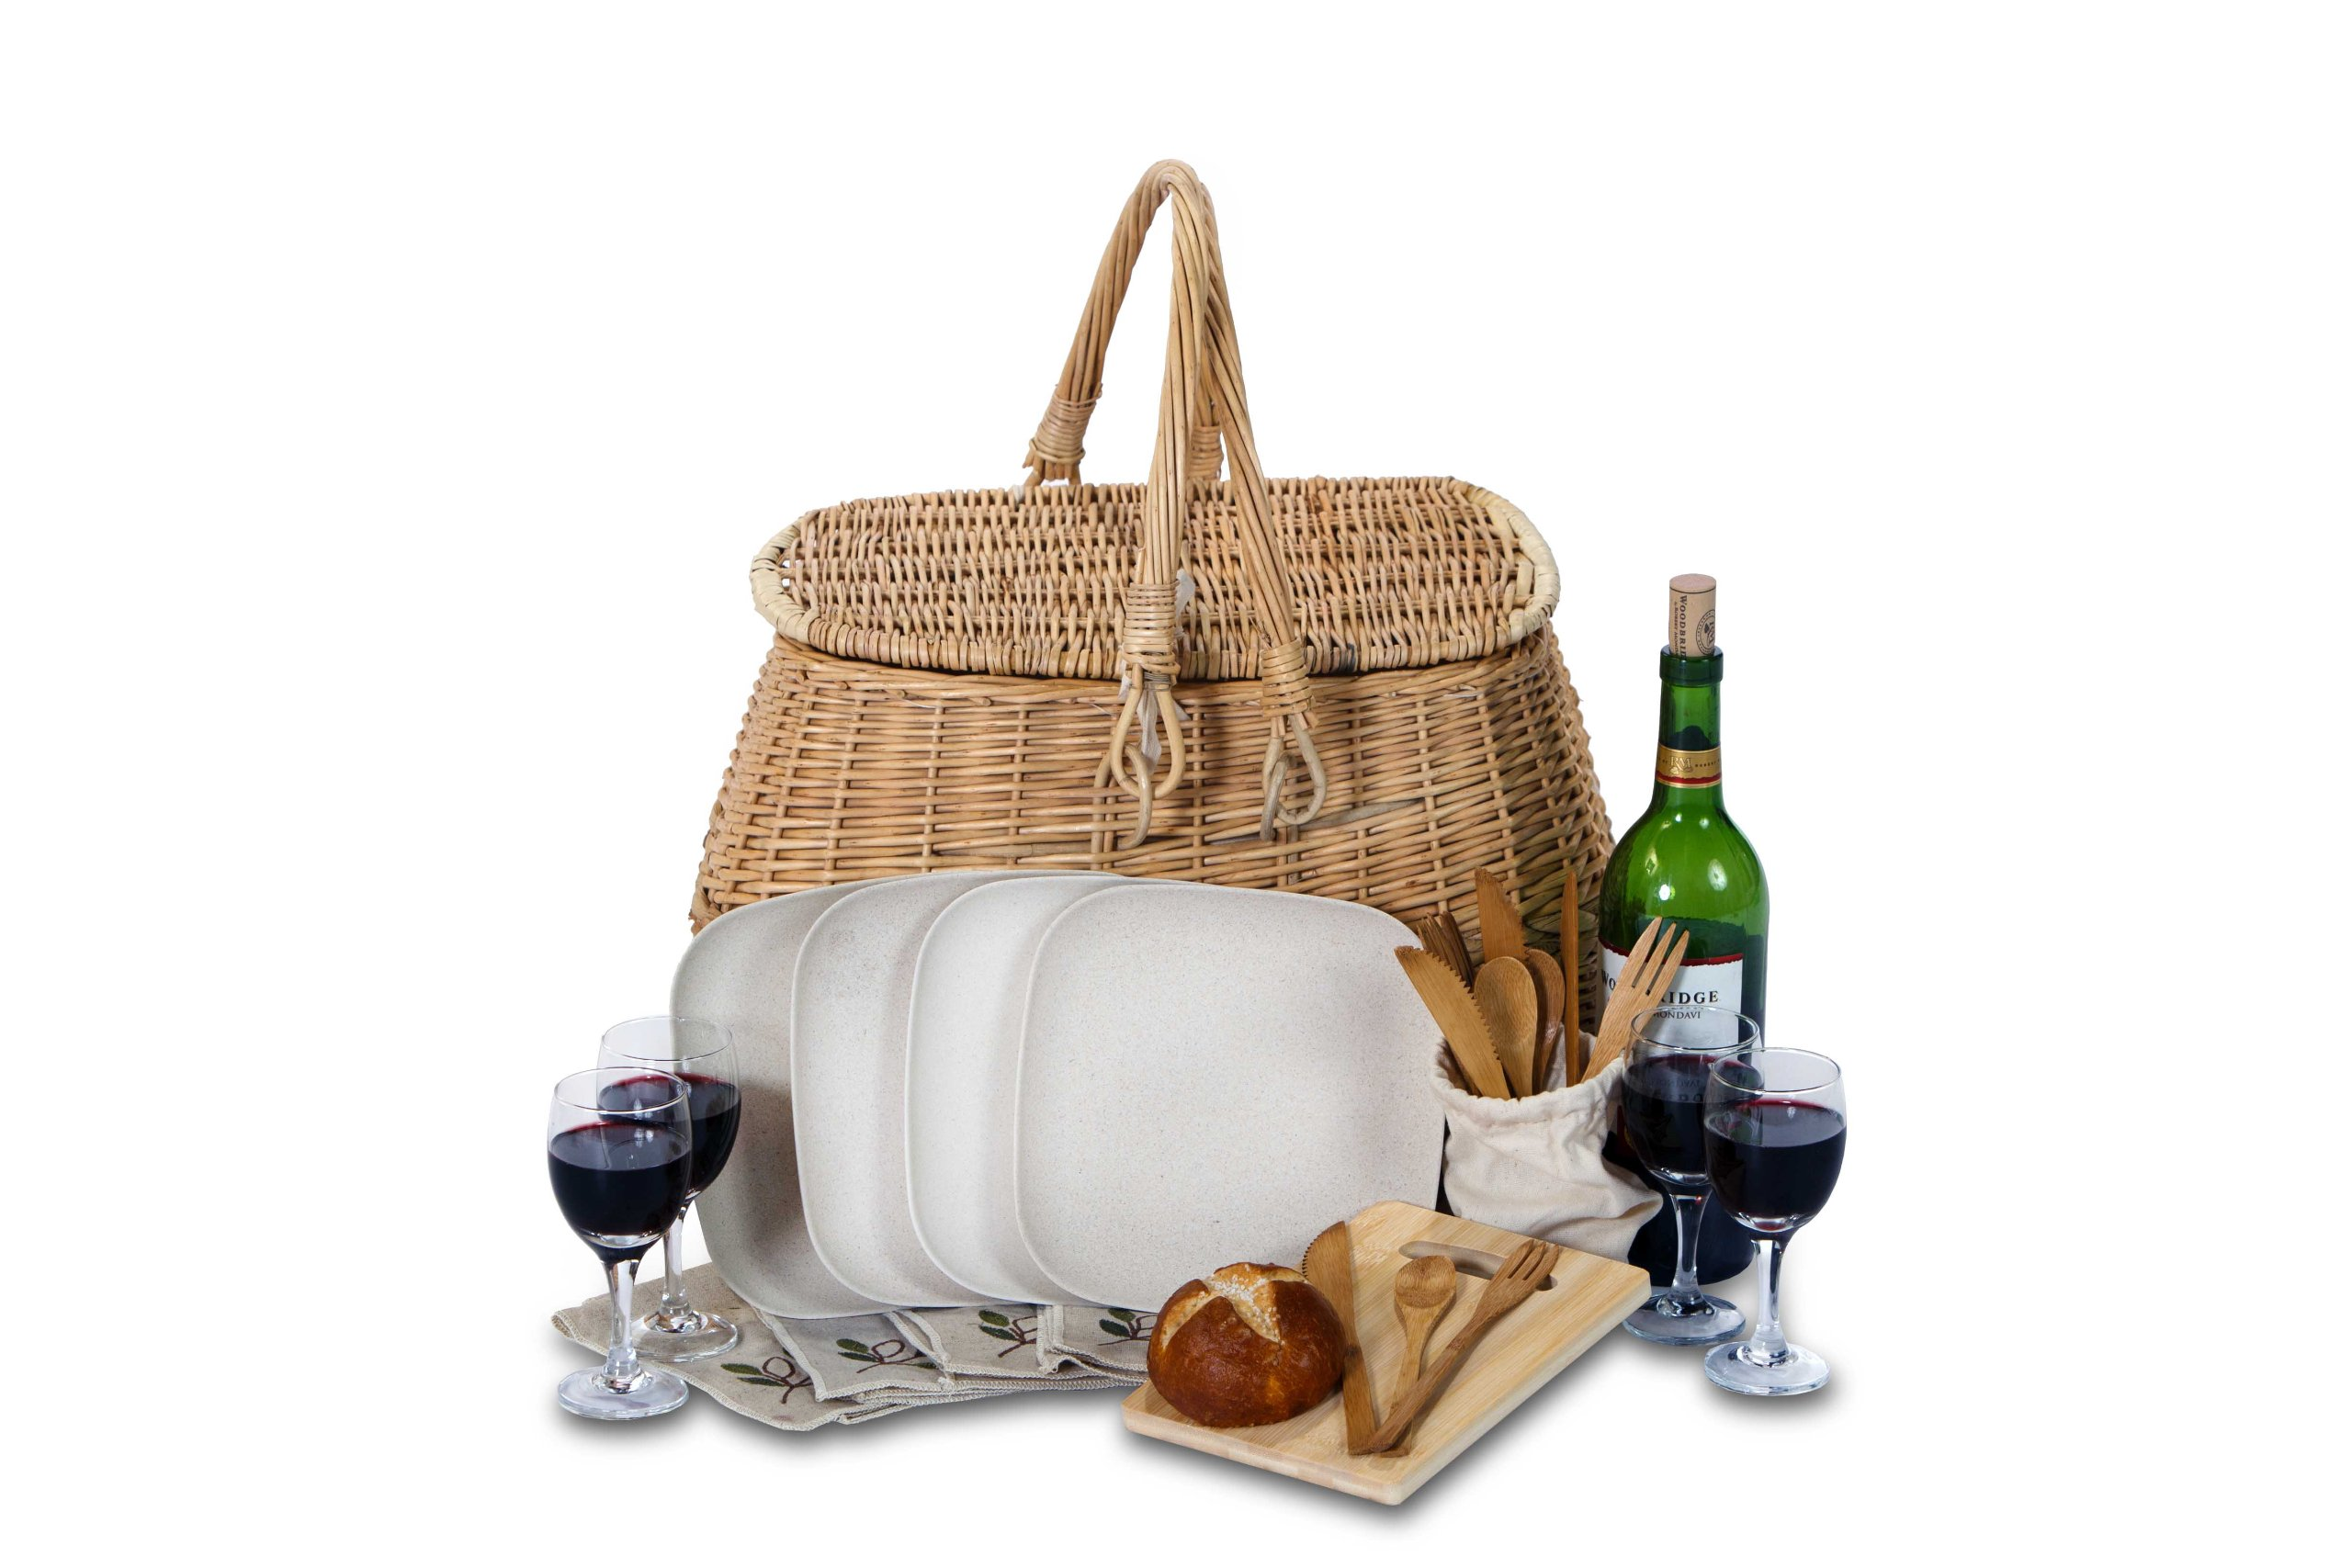 Picnic Plus Eco Friendly 4 Person Picnic Basket Value Sets With Bamboo Fiber Plates Bamboo Utensils